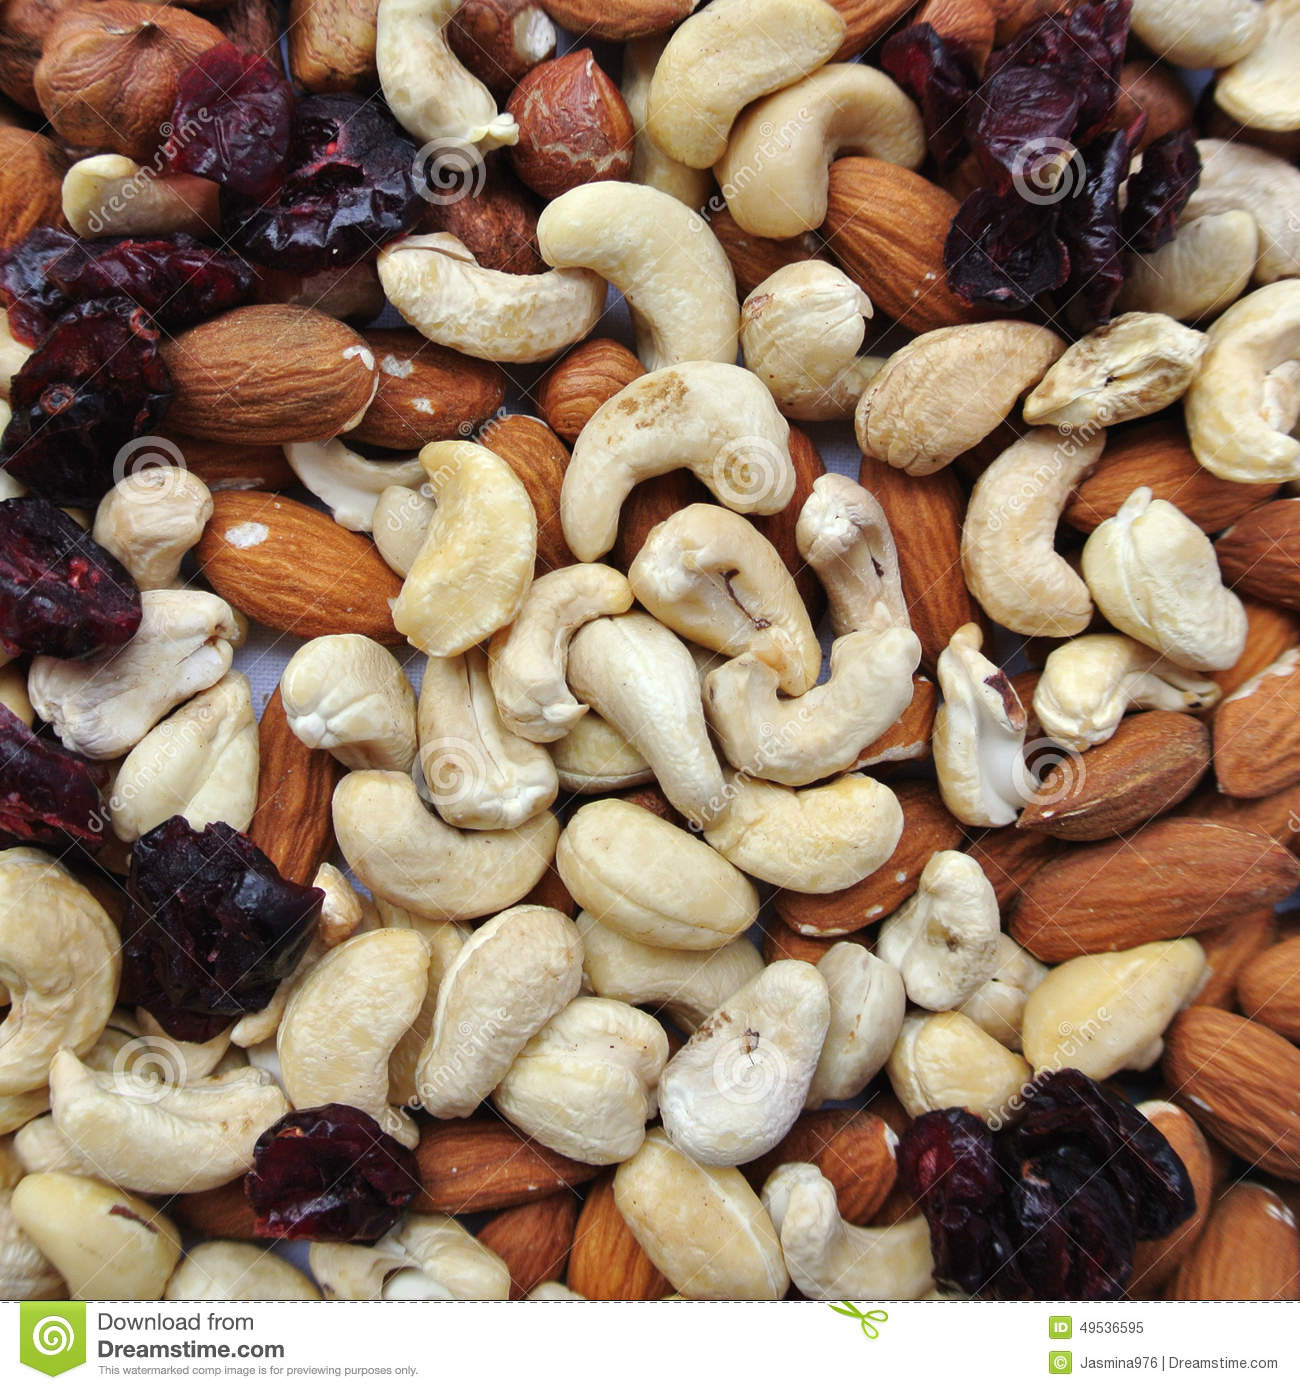 Nuts: cashews, almonds, hazelnuts and dried cranberries